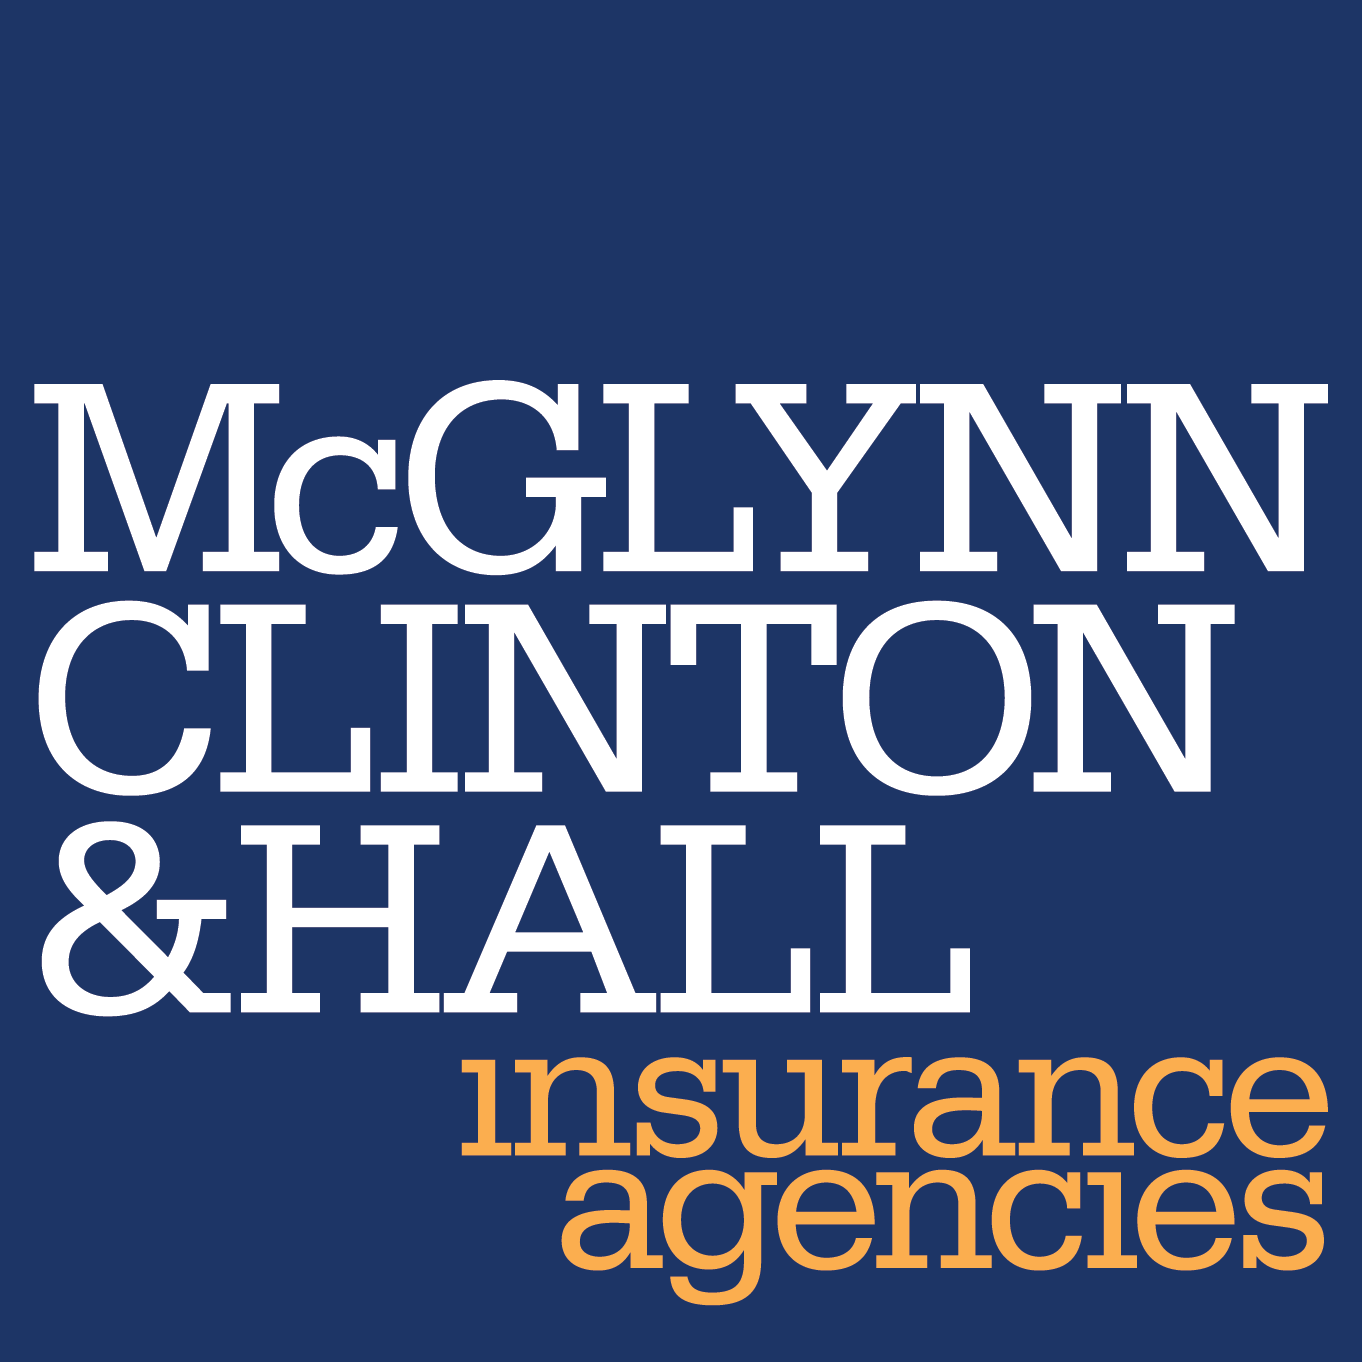 McGlynn, Clinton & Hall Insurance Agencies